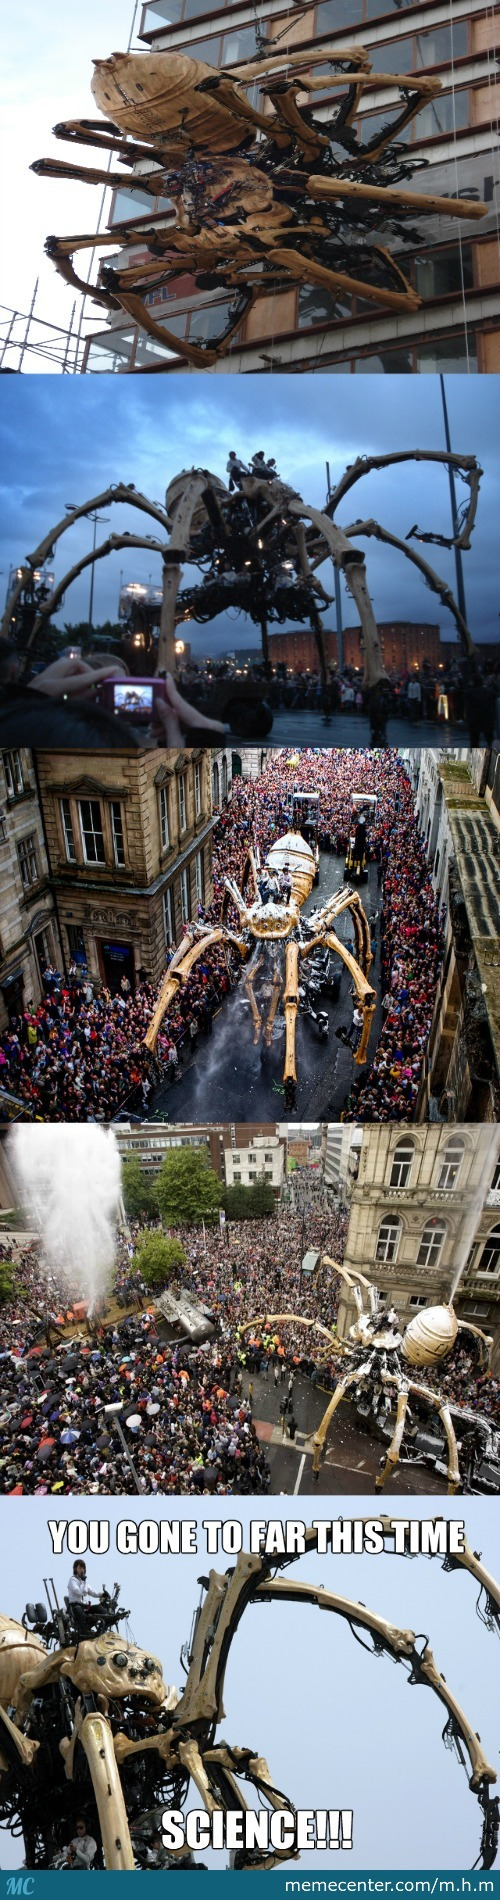 Why Science Why?!? A Giant Death Spider Robot !!